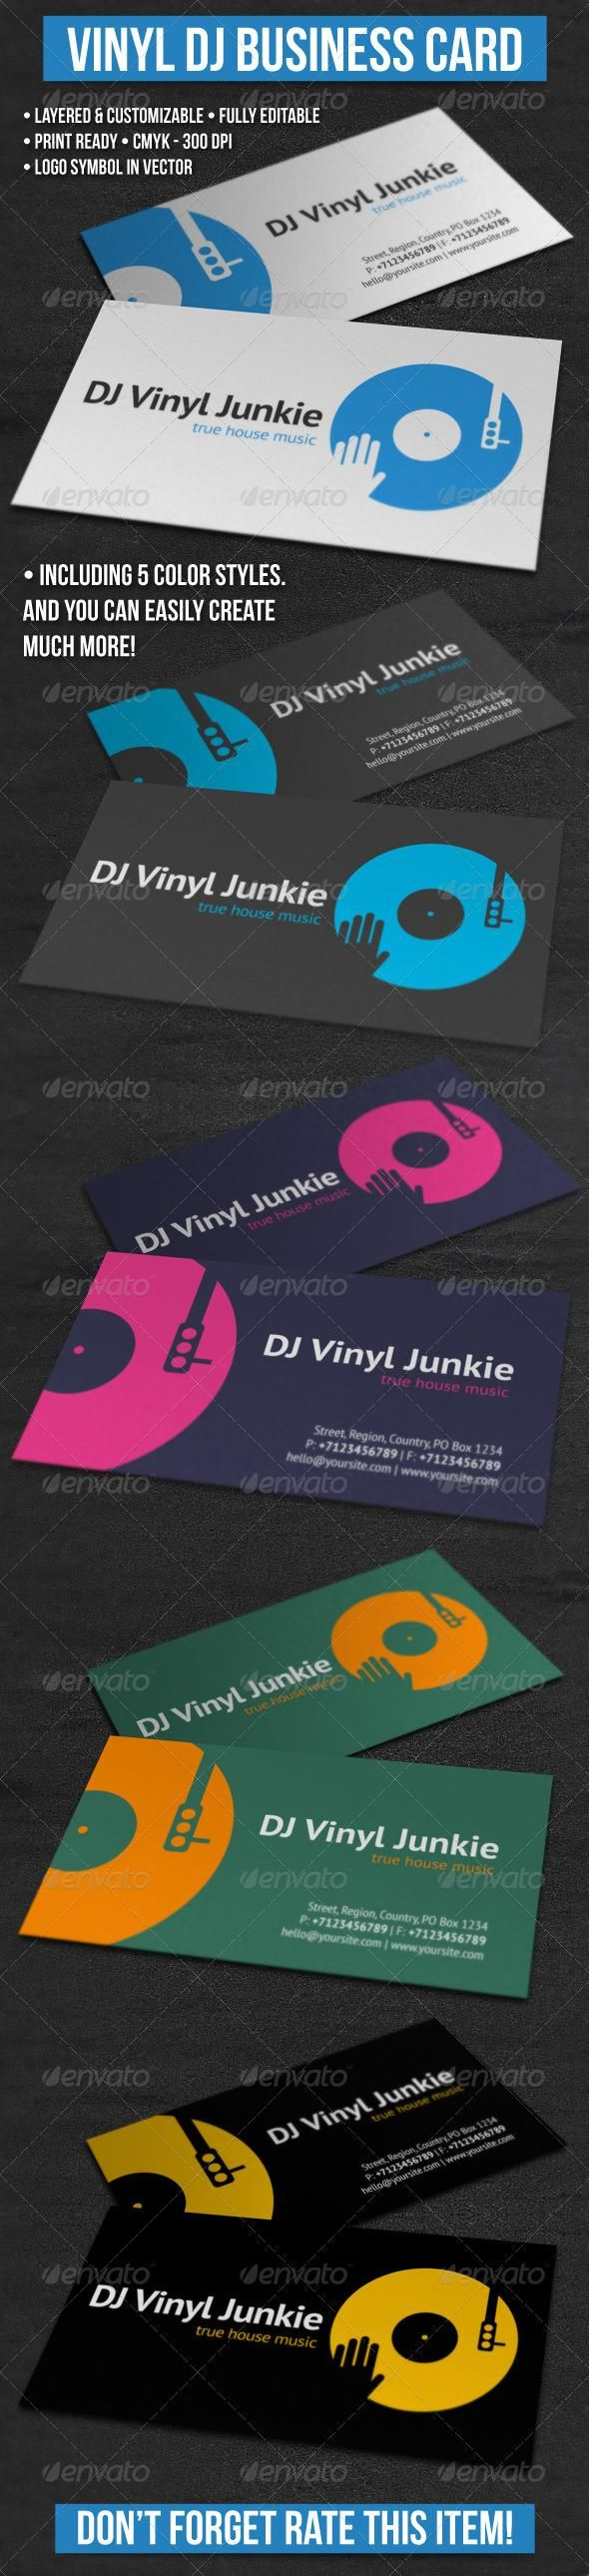 15 Best Creative And Stylish Business Cards Images On Pinterest